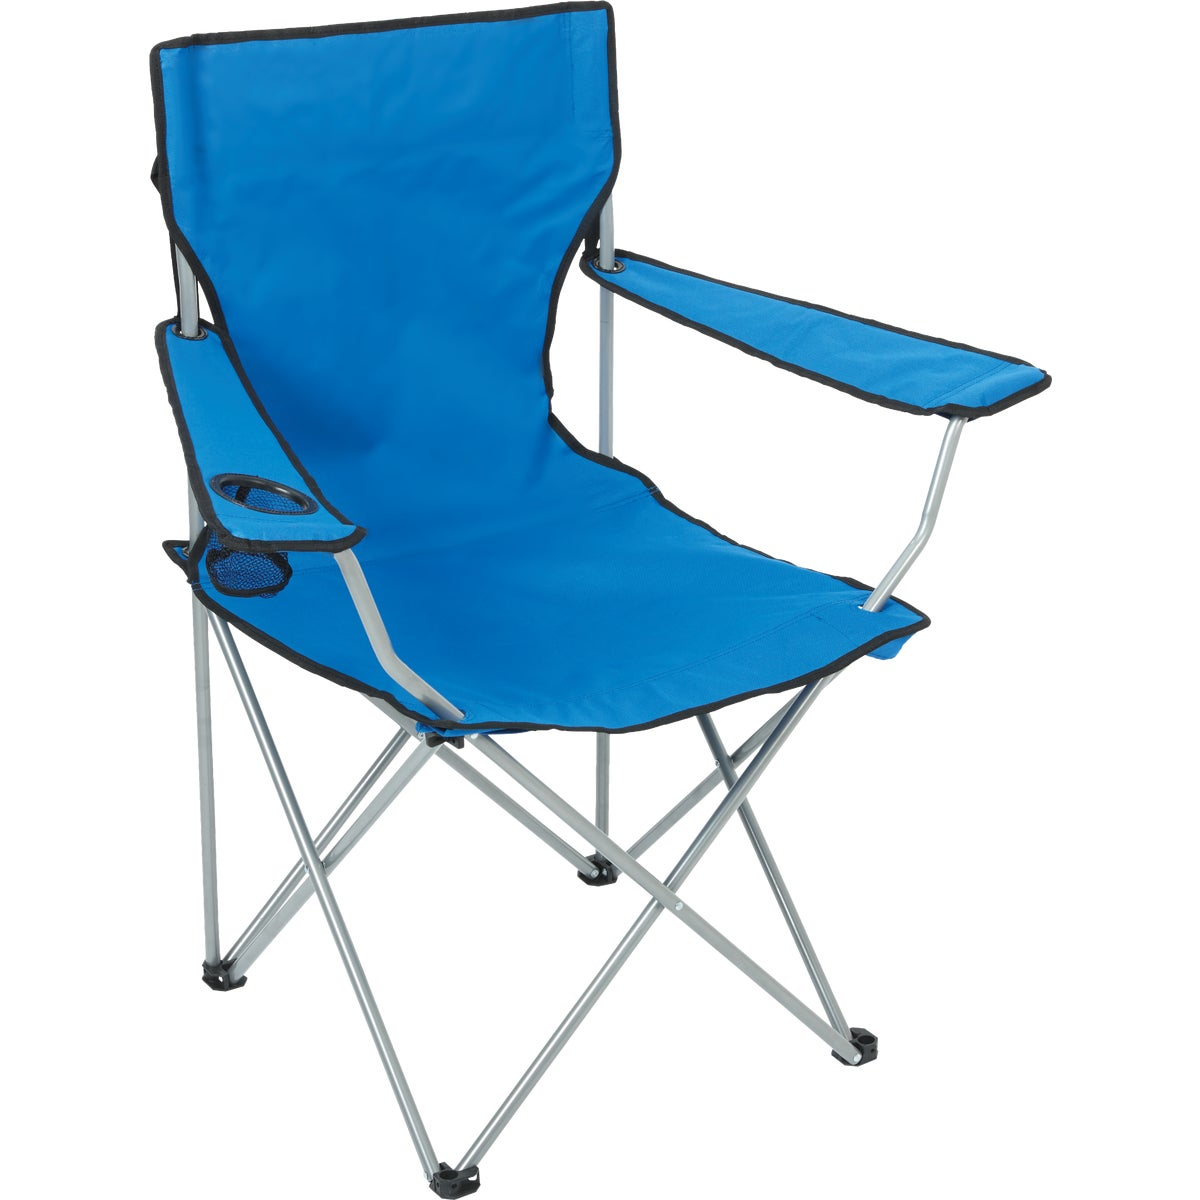 QUICK FOLDING ARMCHAIR - 148568 by Bravo Sports